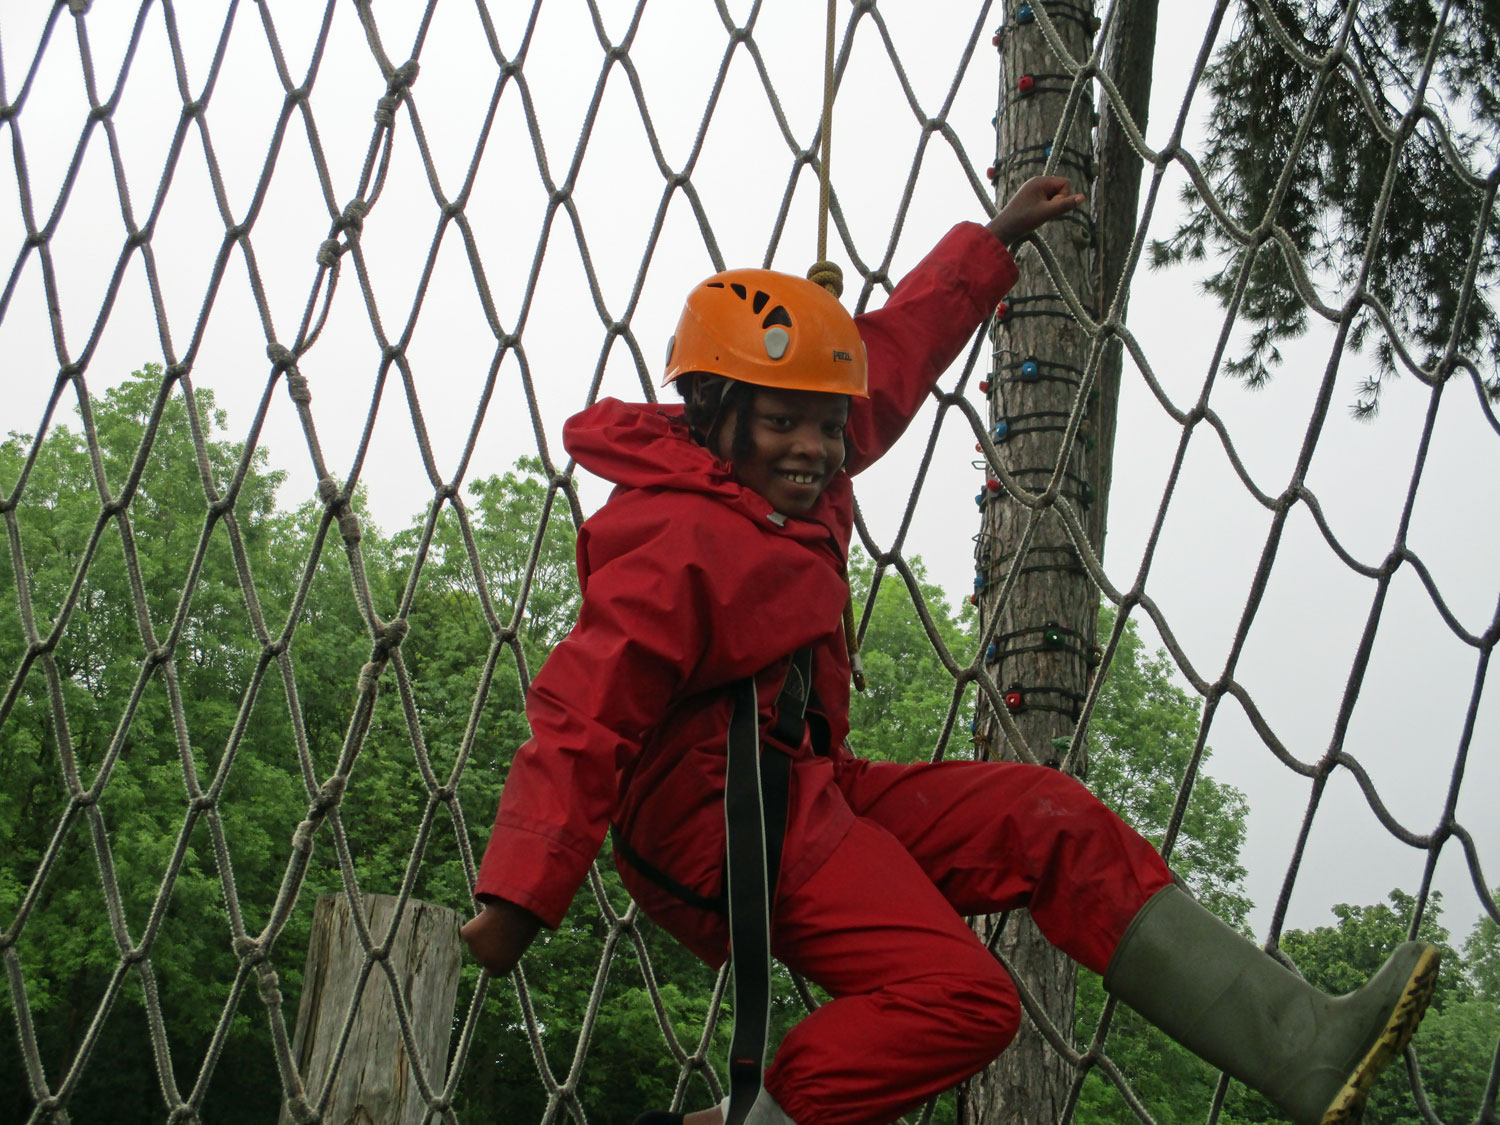 Small boy grins while dangling from his support rope after finishing his cargo net climb